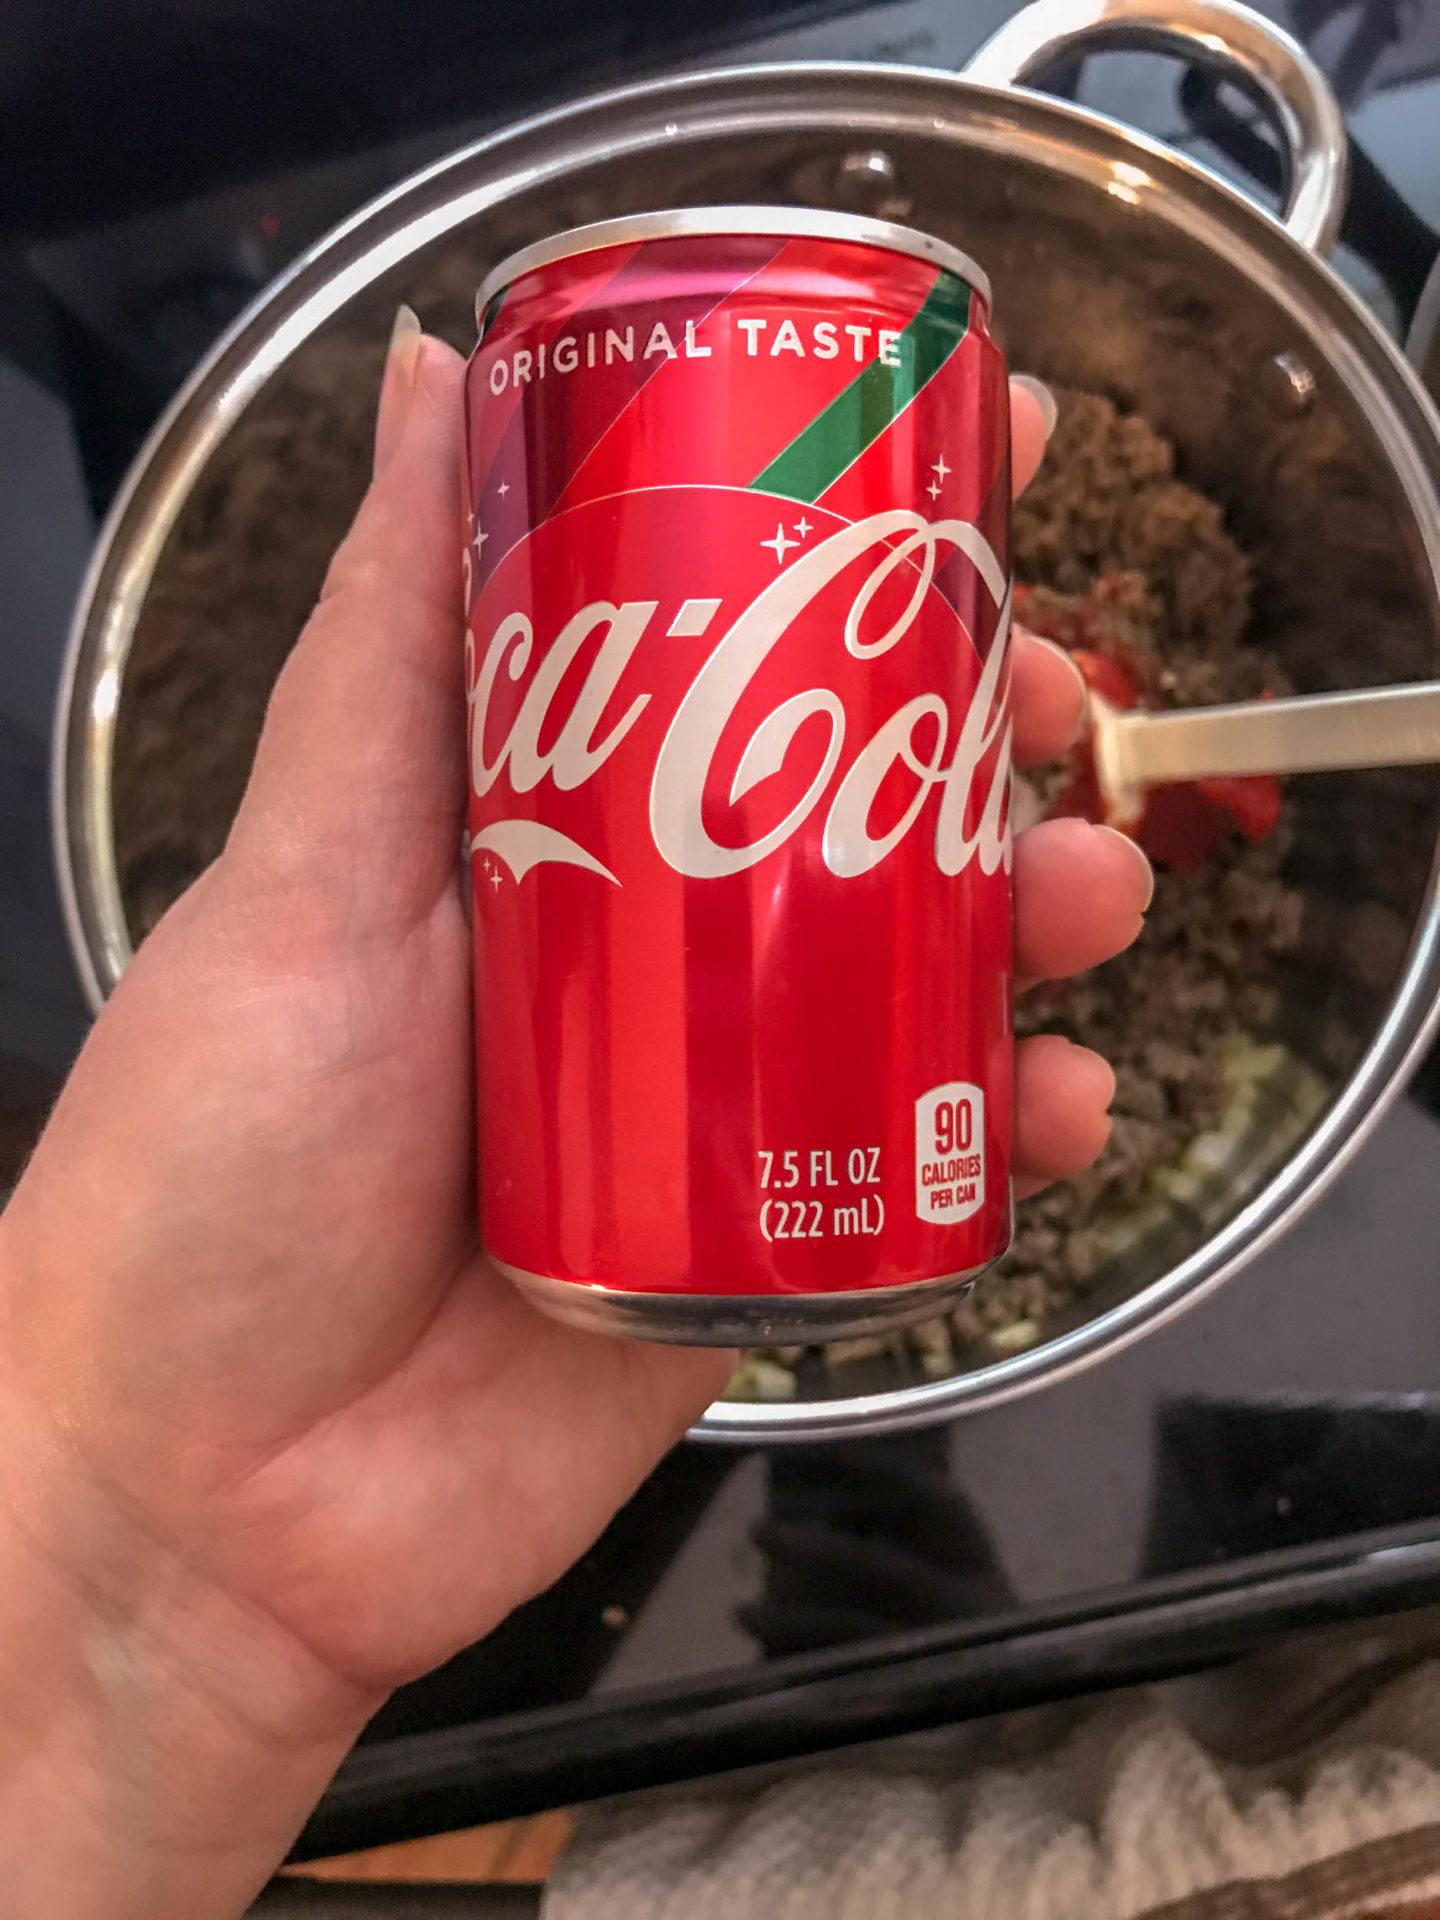 cocoa cola being used for sloppy joe mix